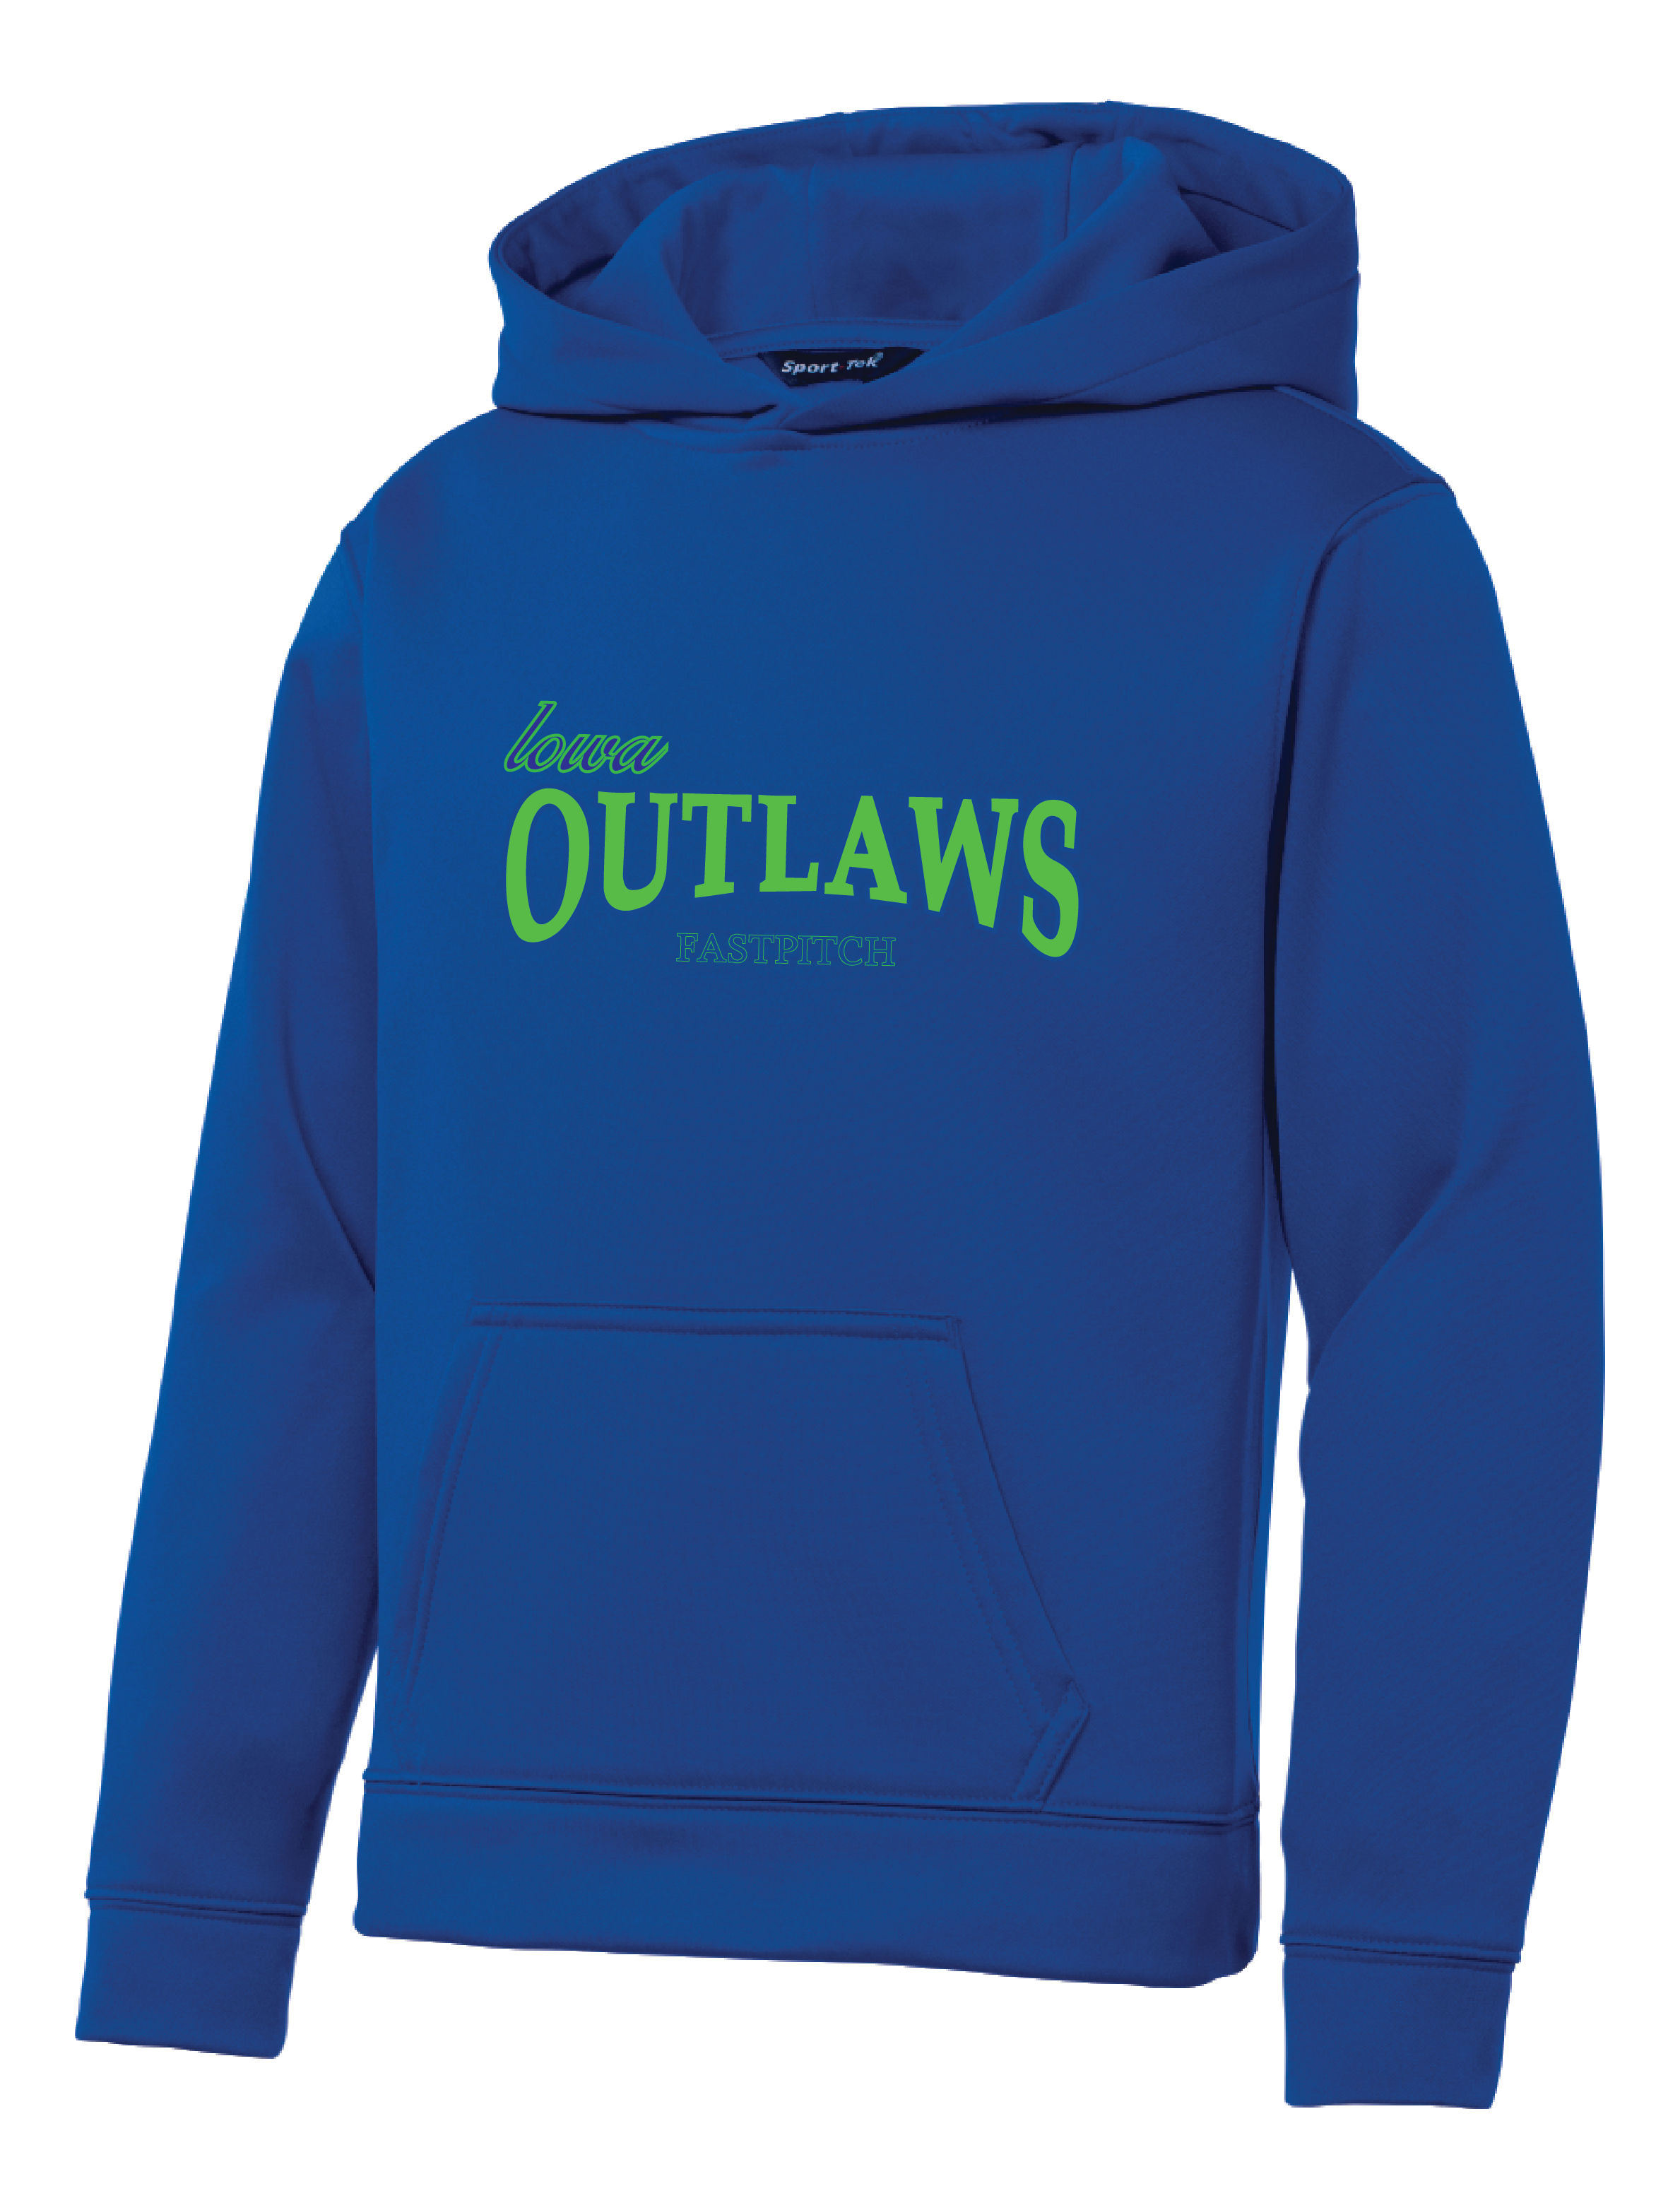 Iowa OUTLAWS Fastpitch YOUTH PERFORMANCE HOODIE - ROYAL